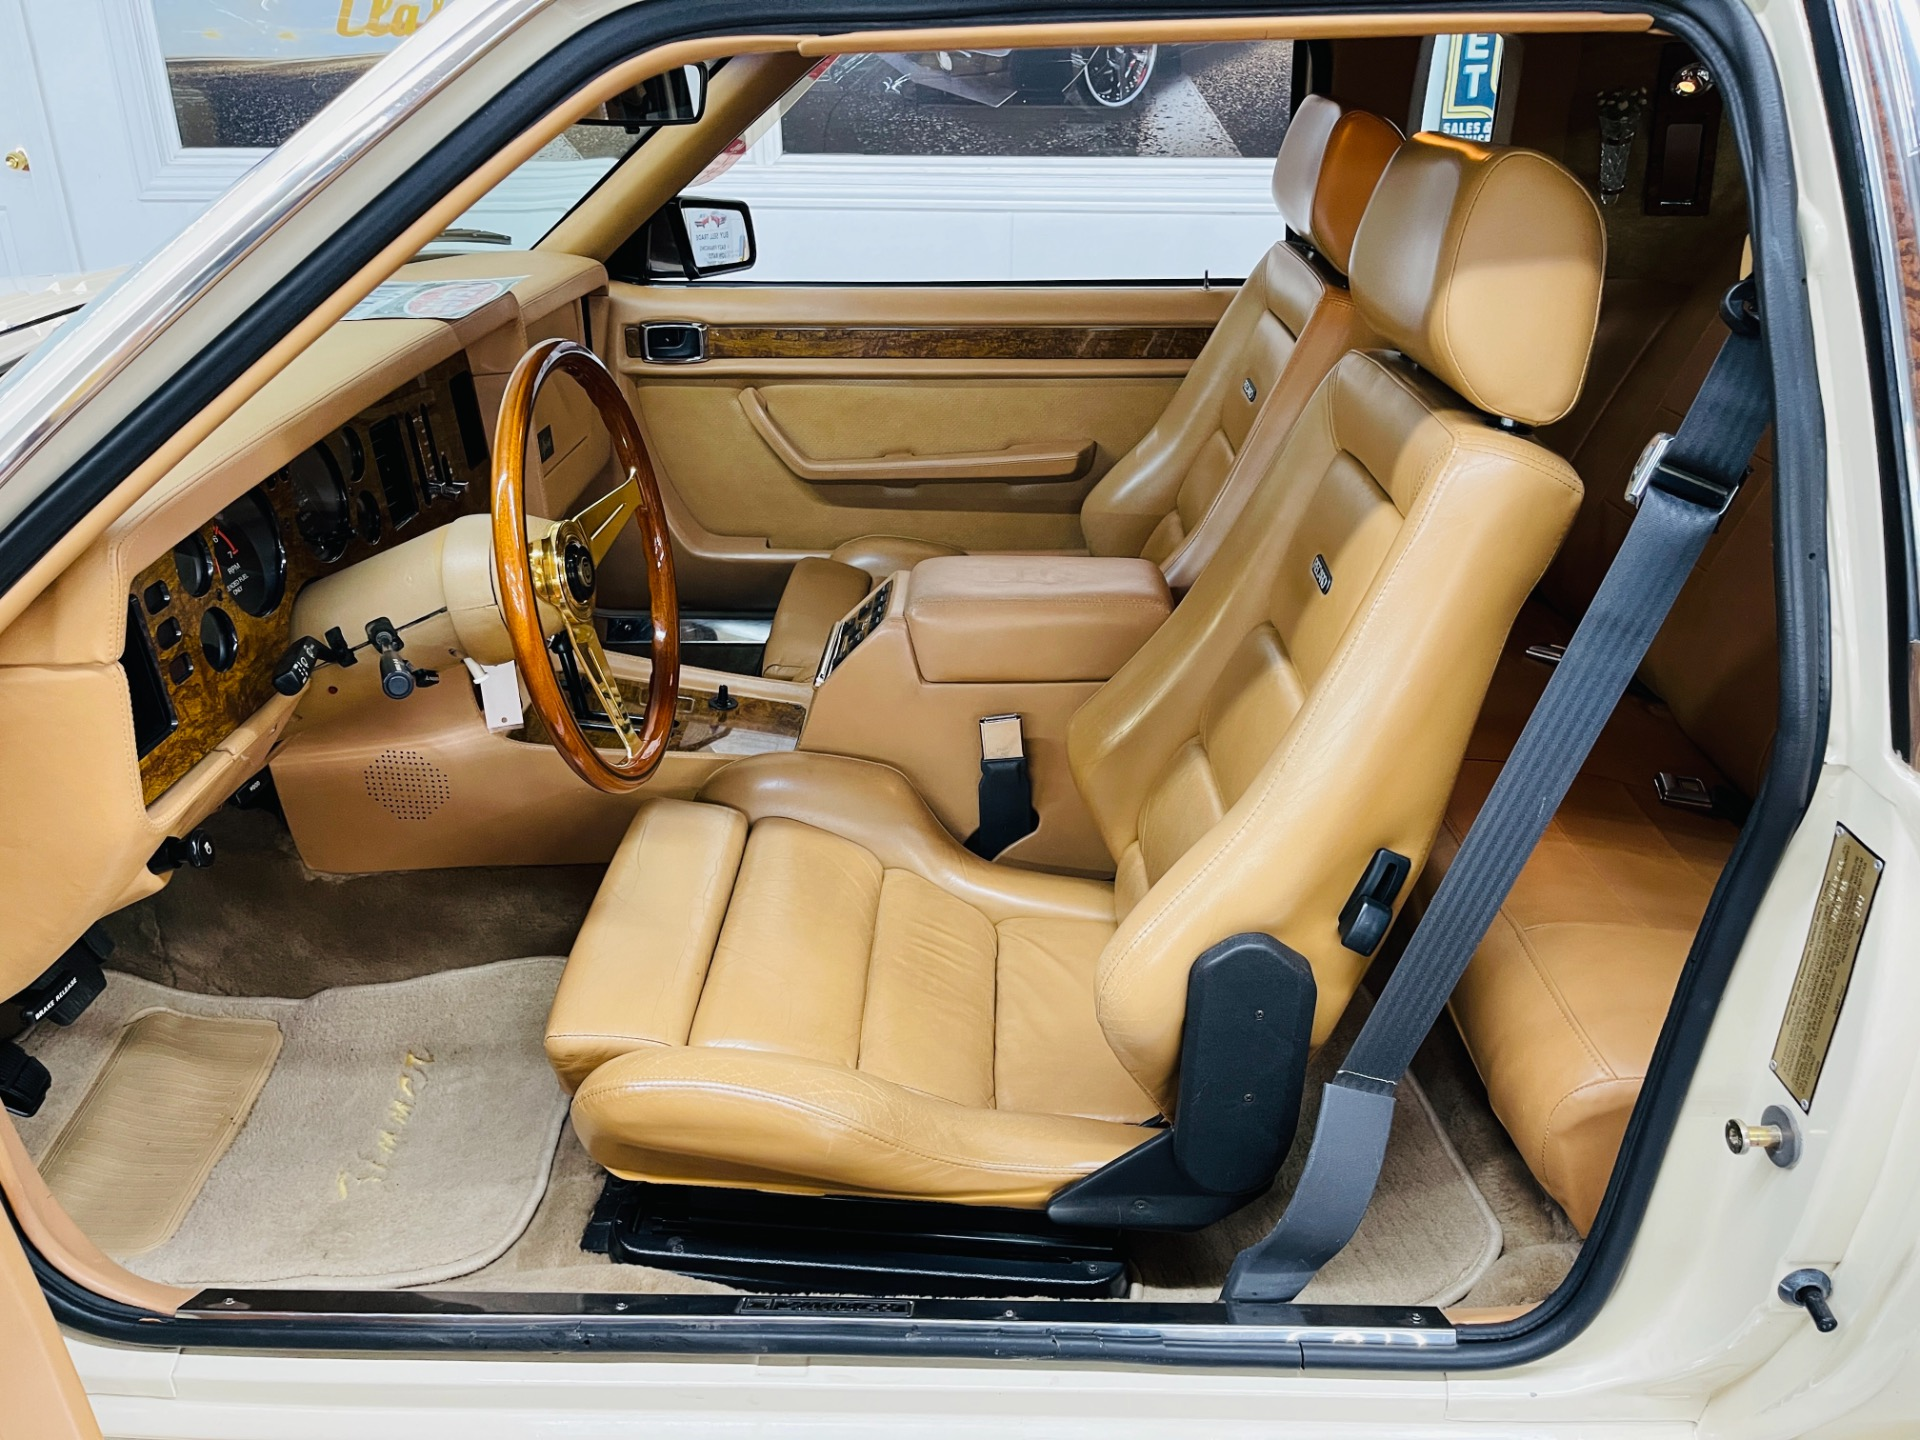 Used 1986 Ford Zimmer -GOLDEN SPIRIT - LIKE NEW CONDITION - LOW MILES - SEE VIDEO   Mundelein, IL